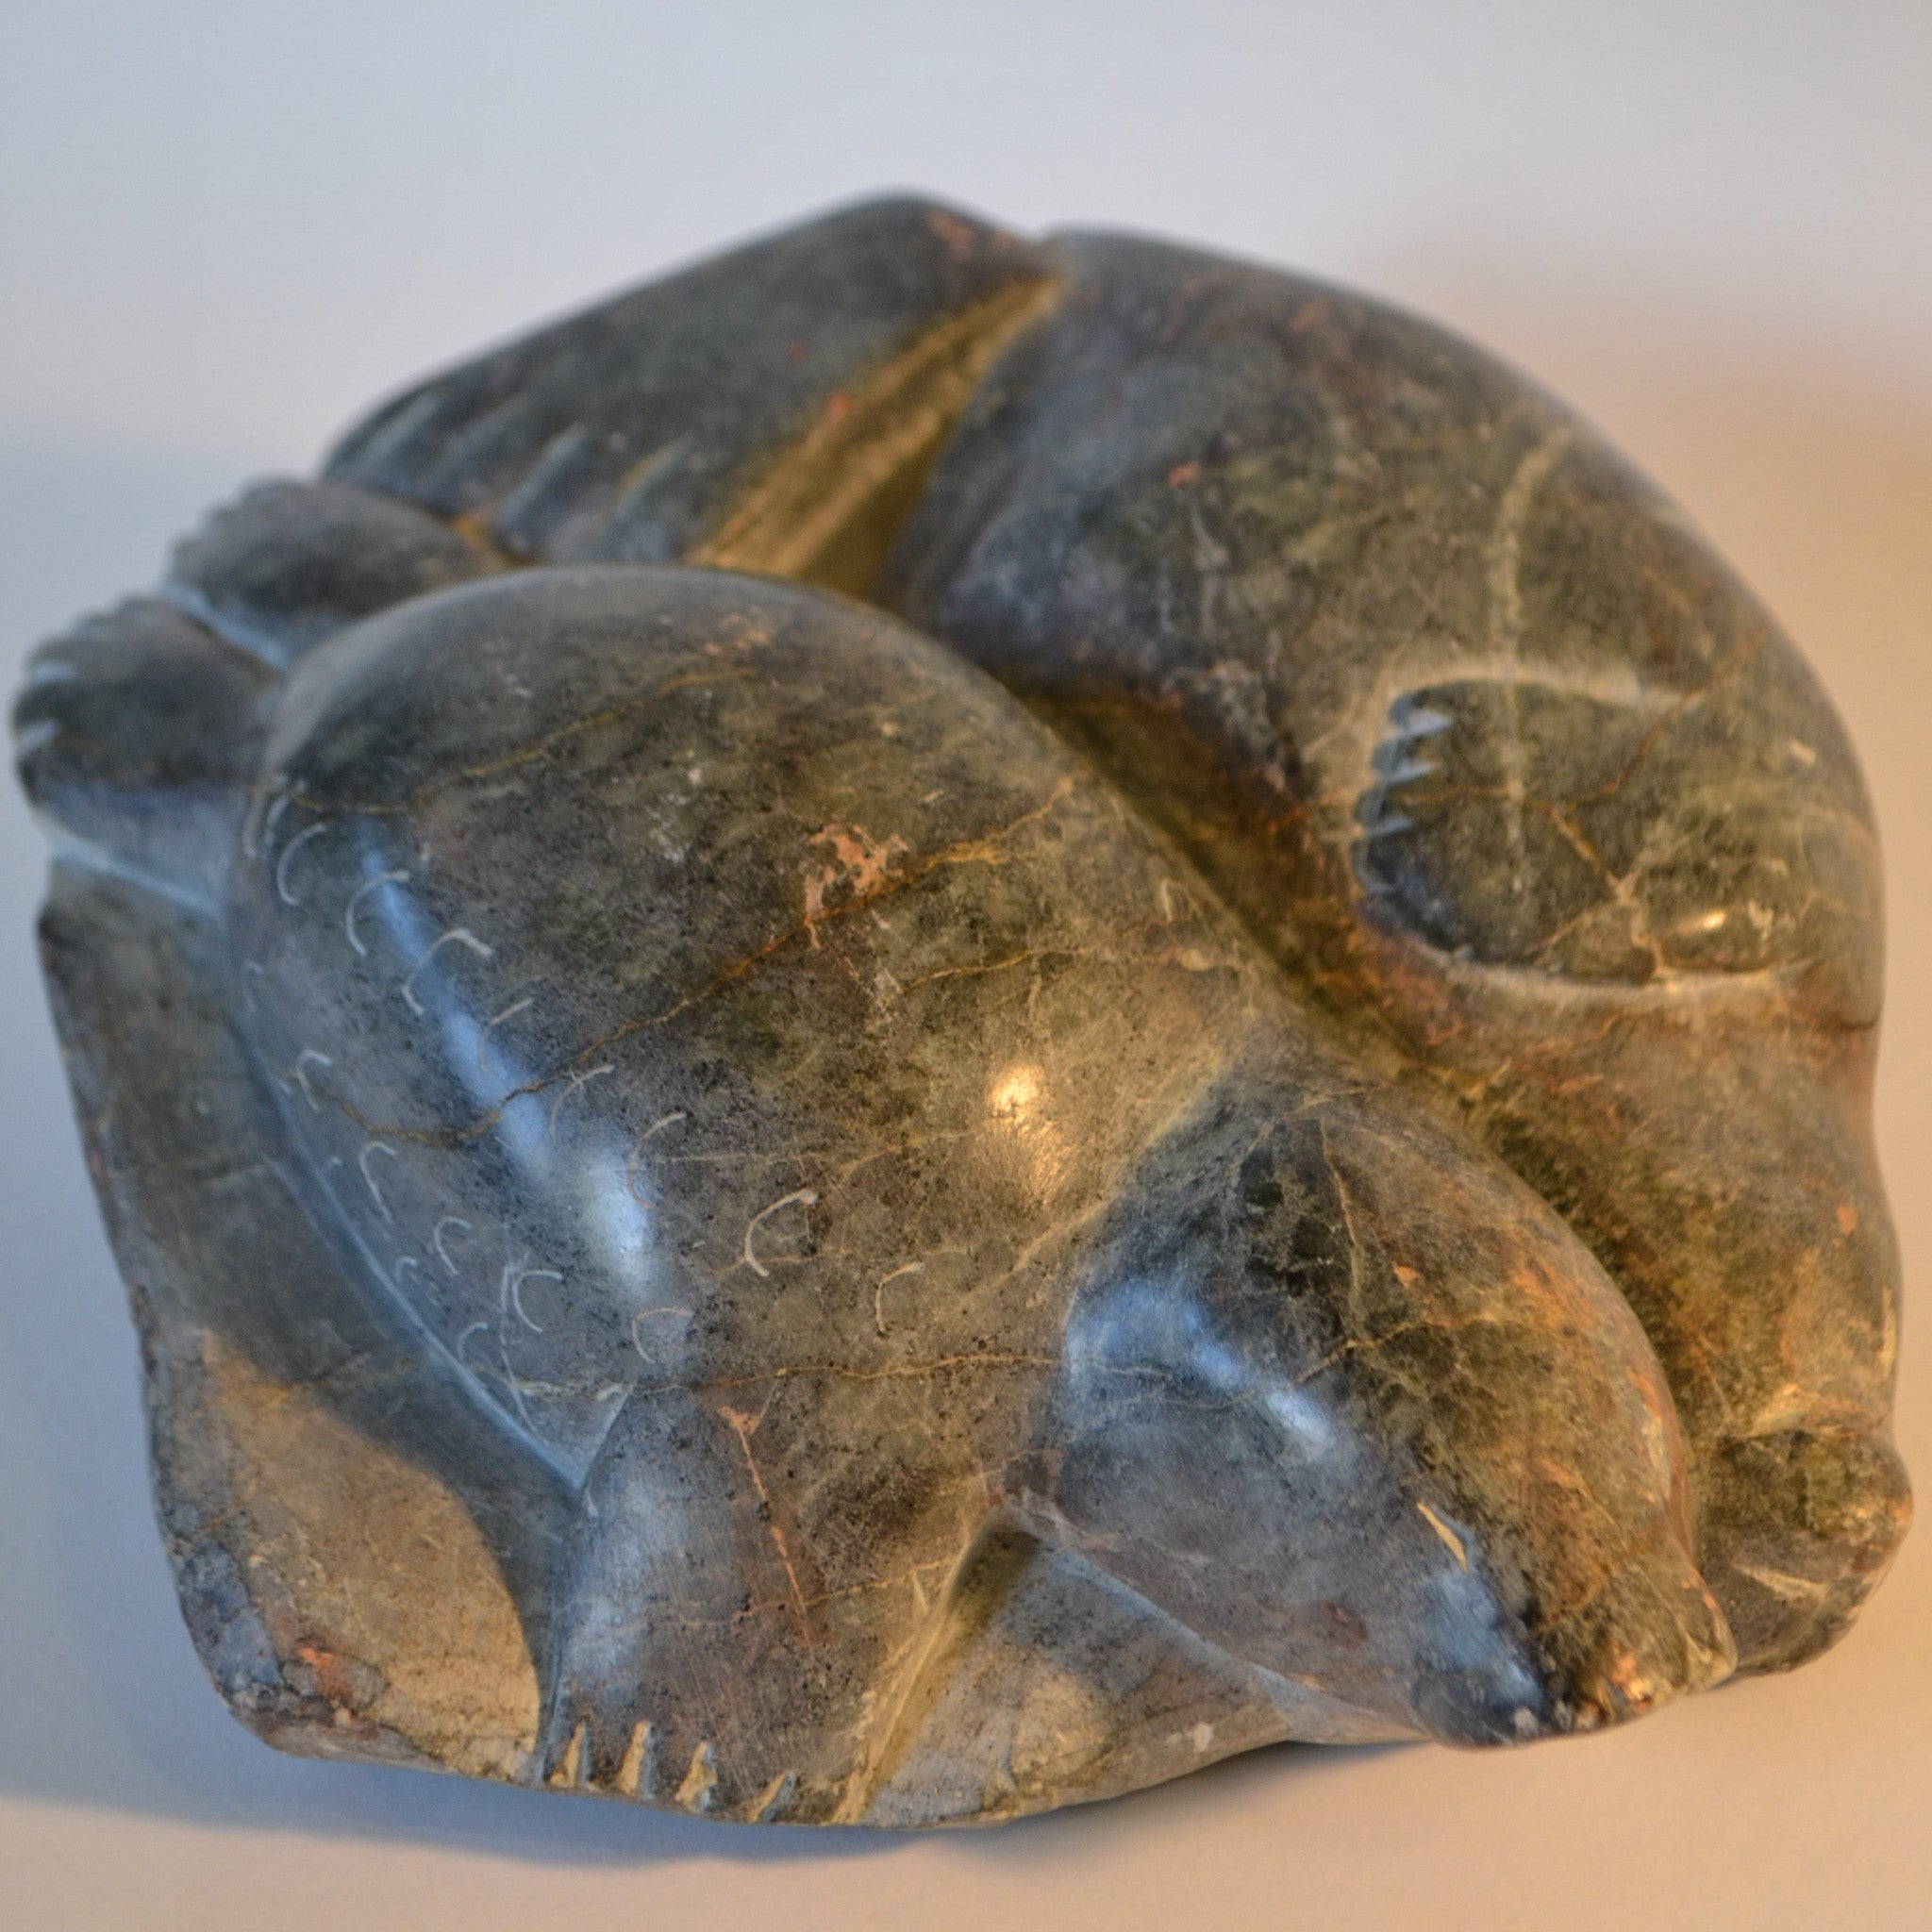 Inuit carving sealion pair